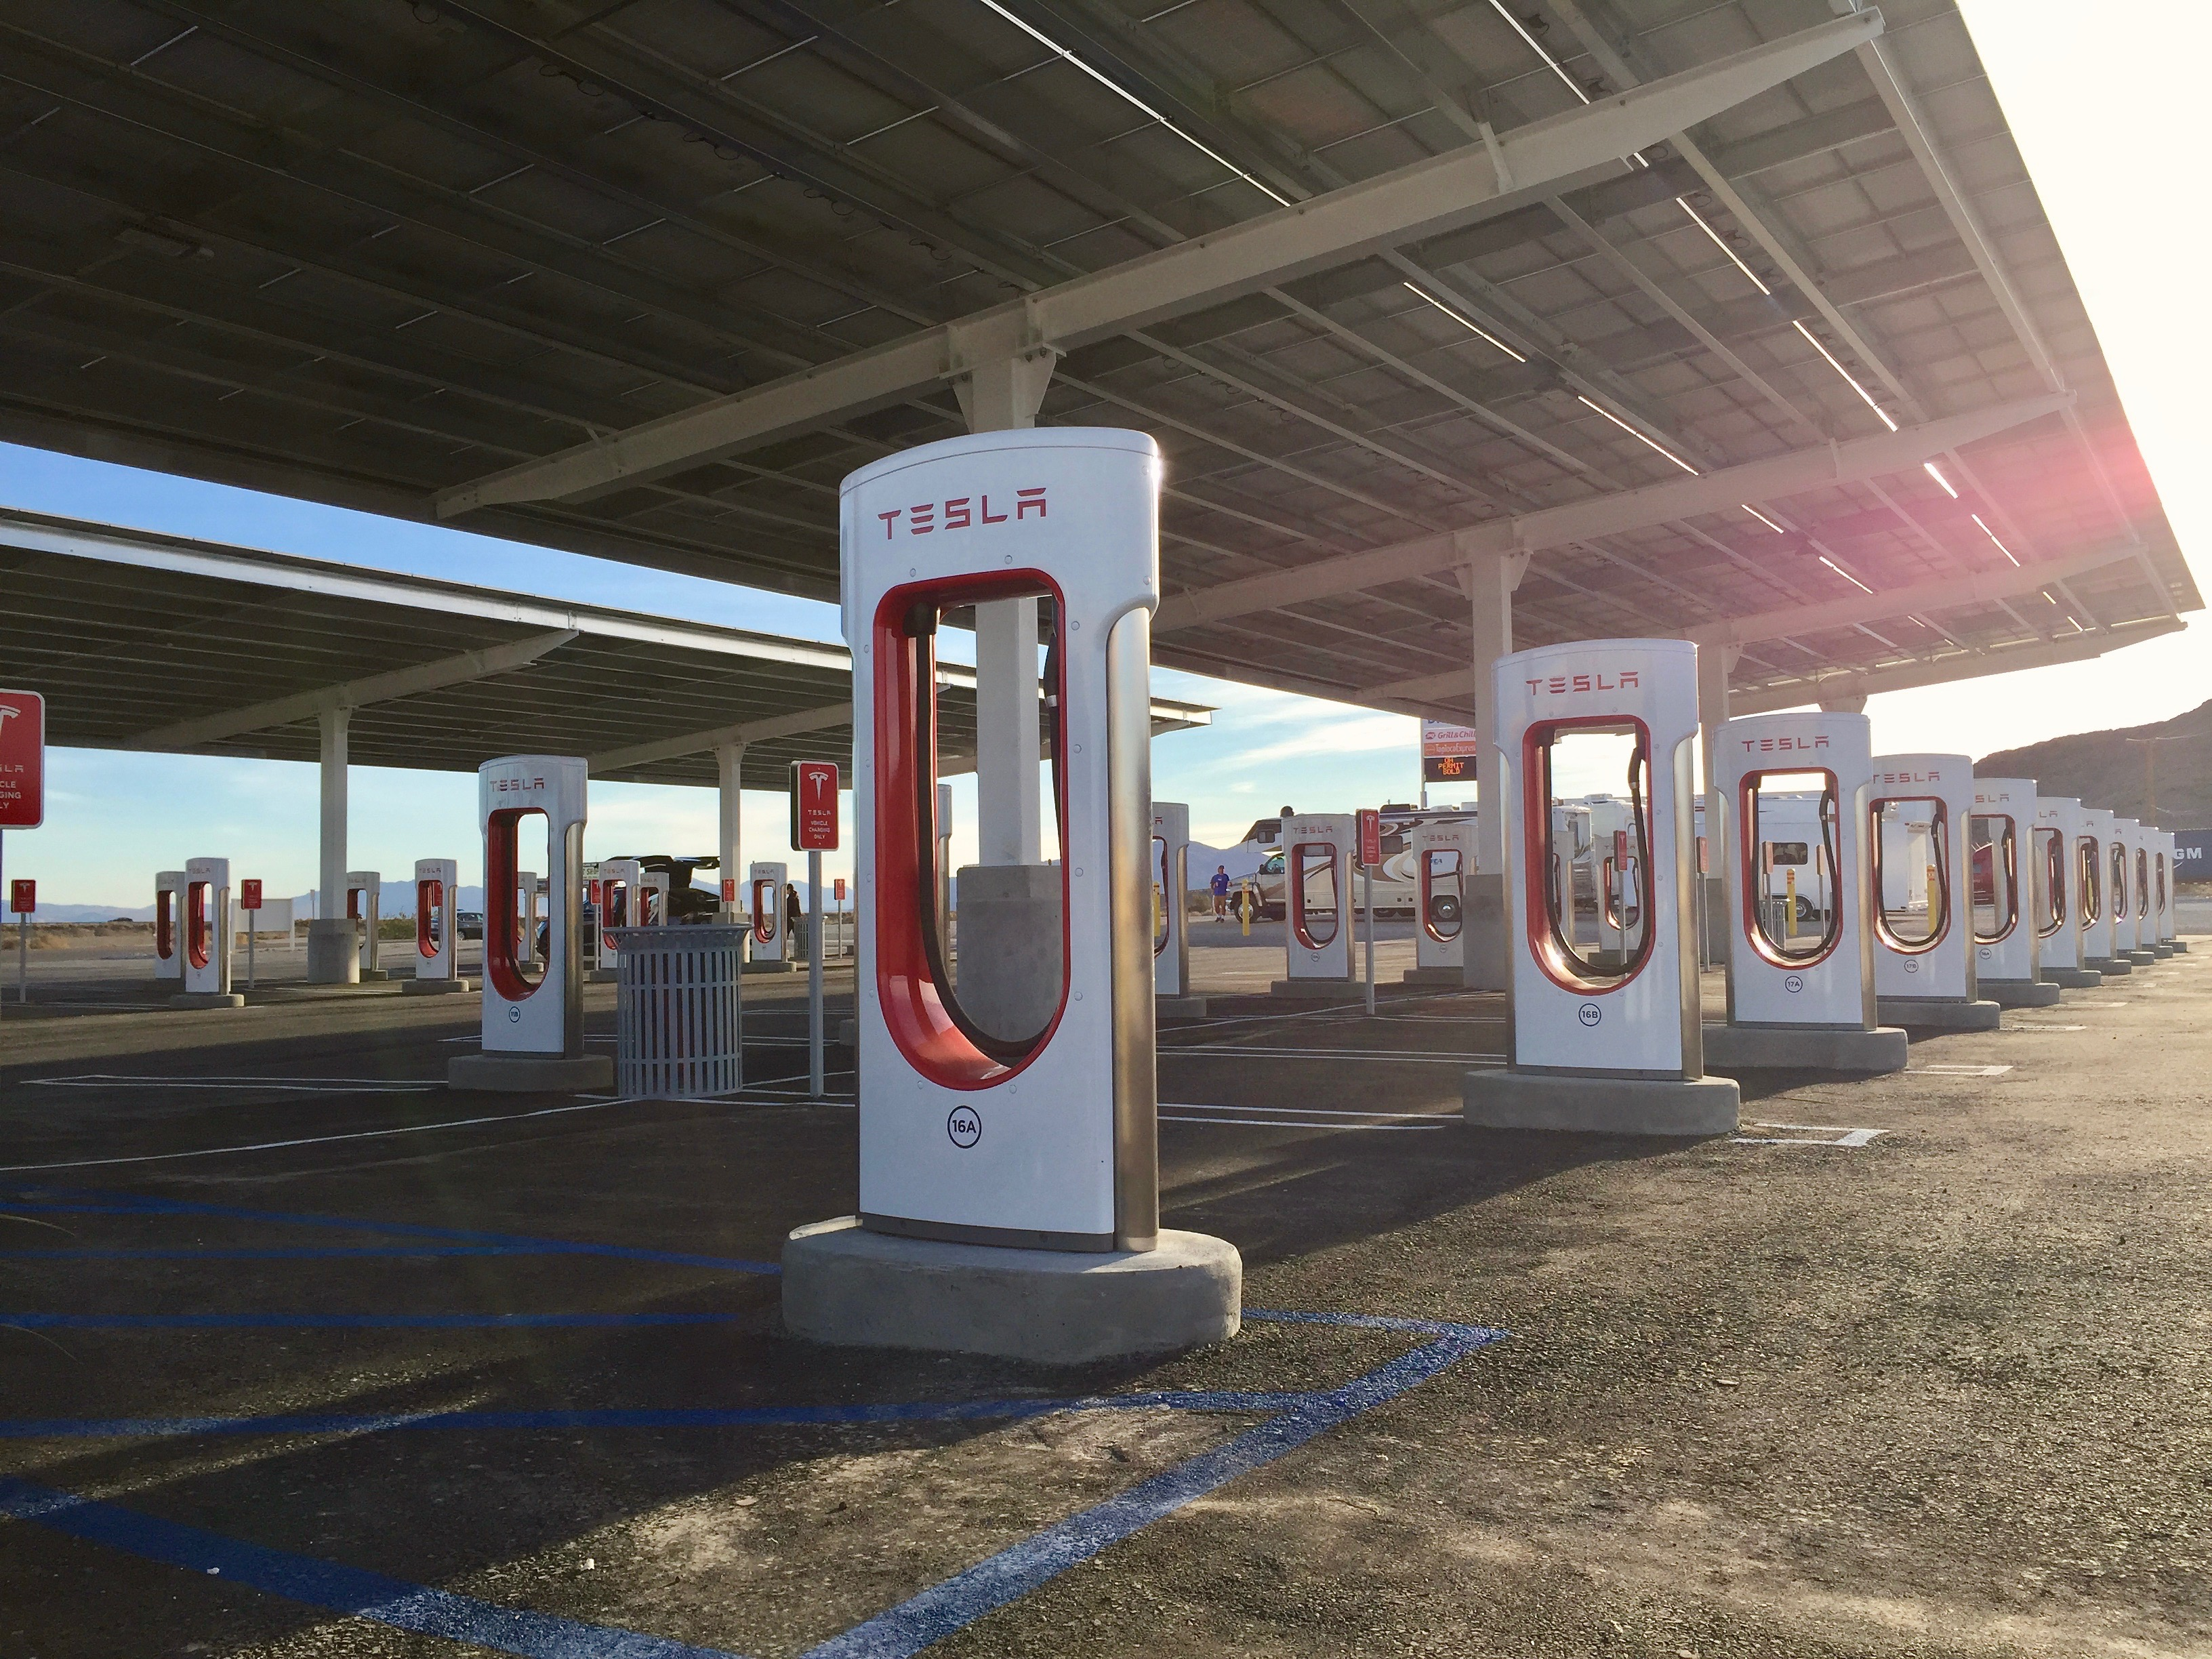 Tesla updates Referral Program, all Model 3 eligible for free Supercharging